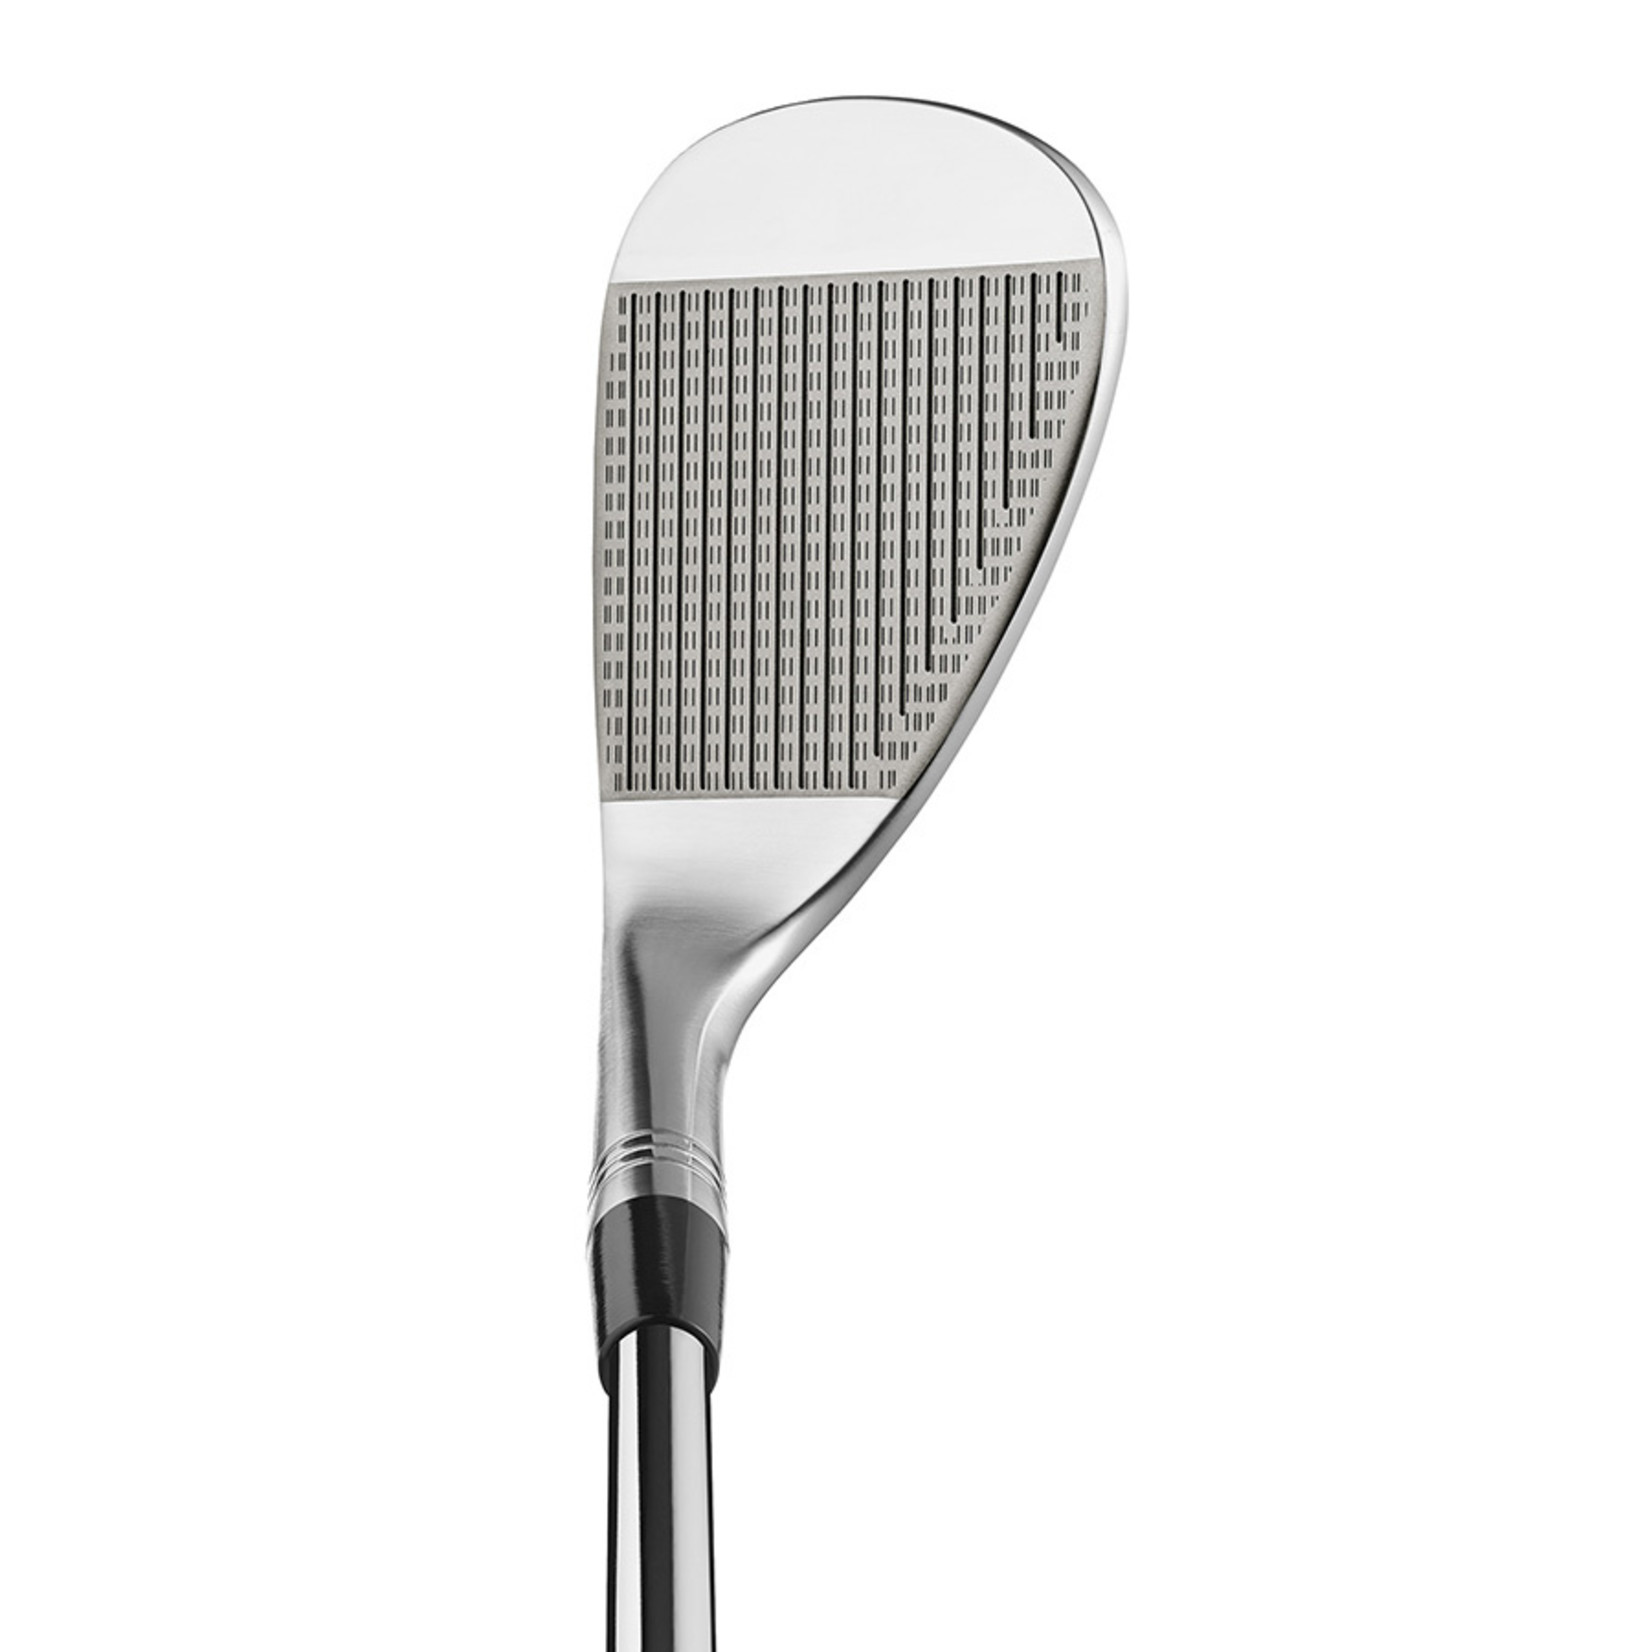 TaylorMade MG2.TW Wedge